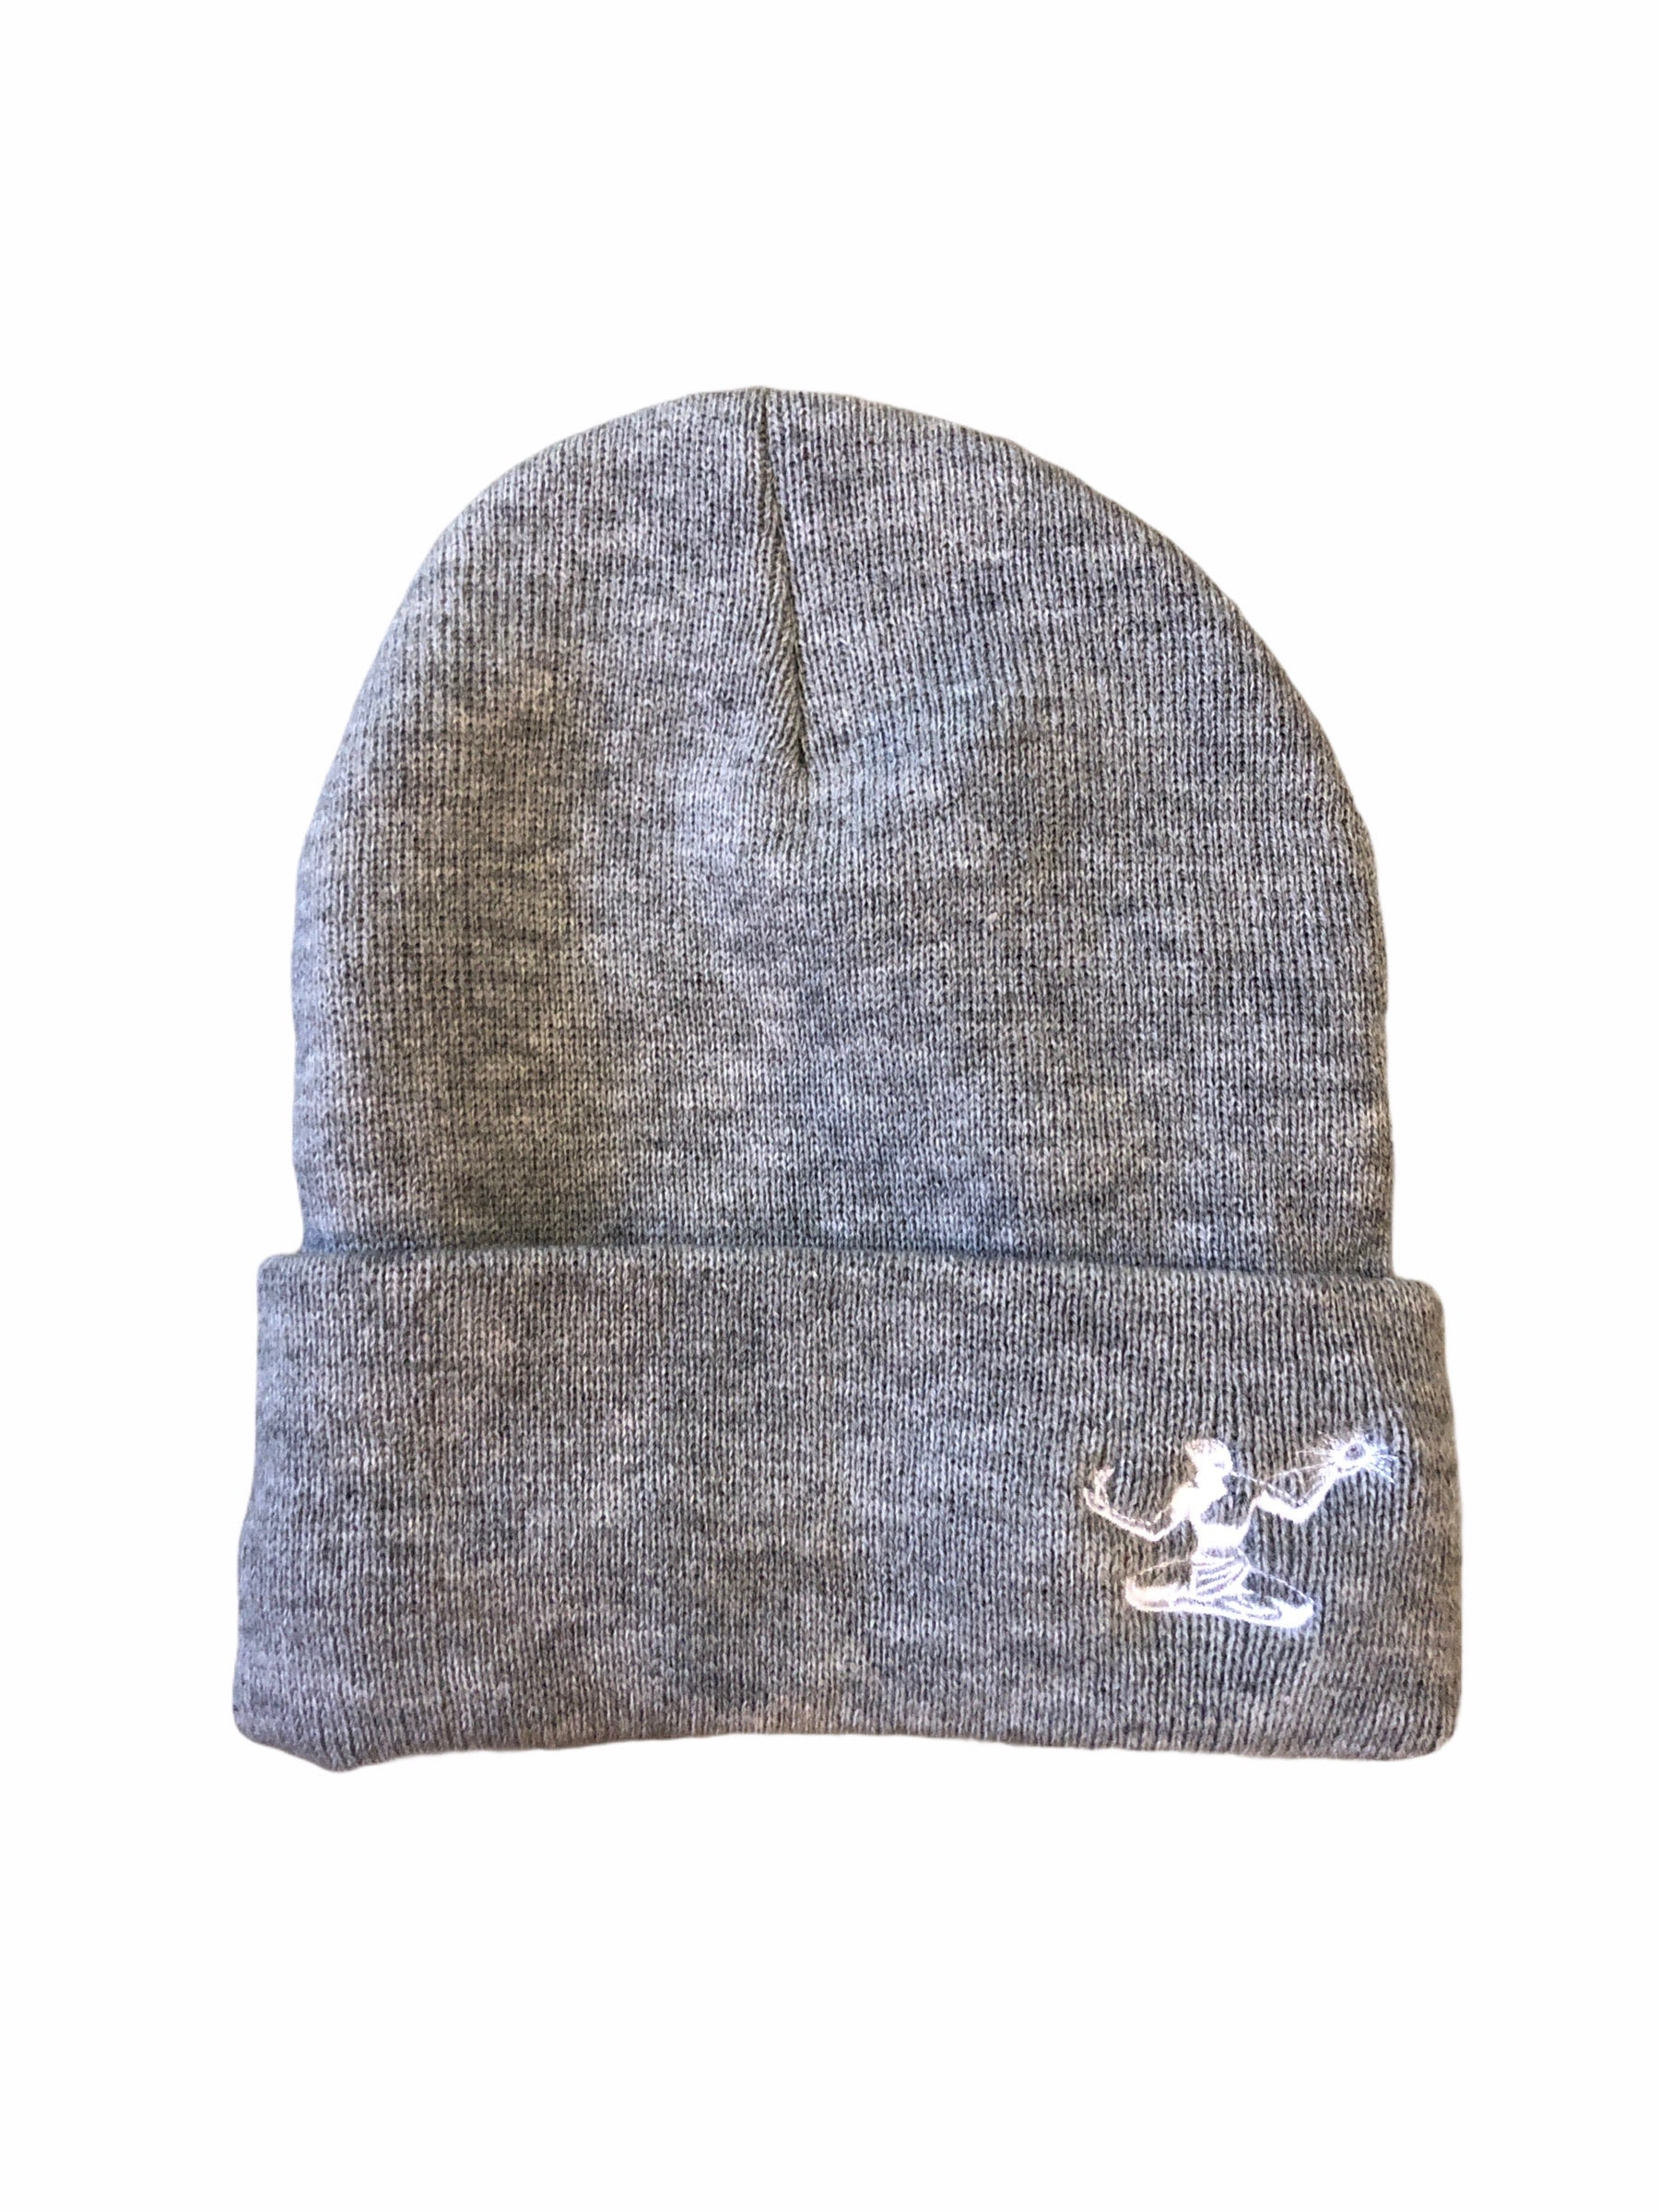 Spirit of Detroit Lined Beanie / Heather Grey - Pure Detroit